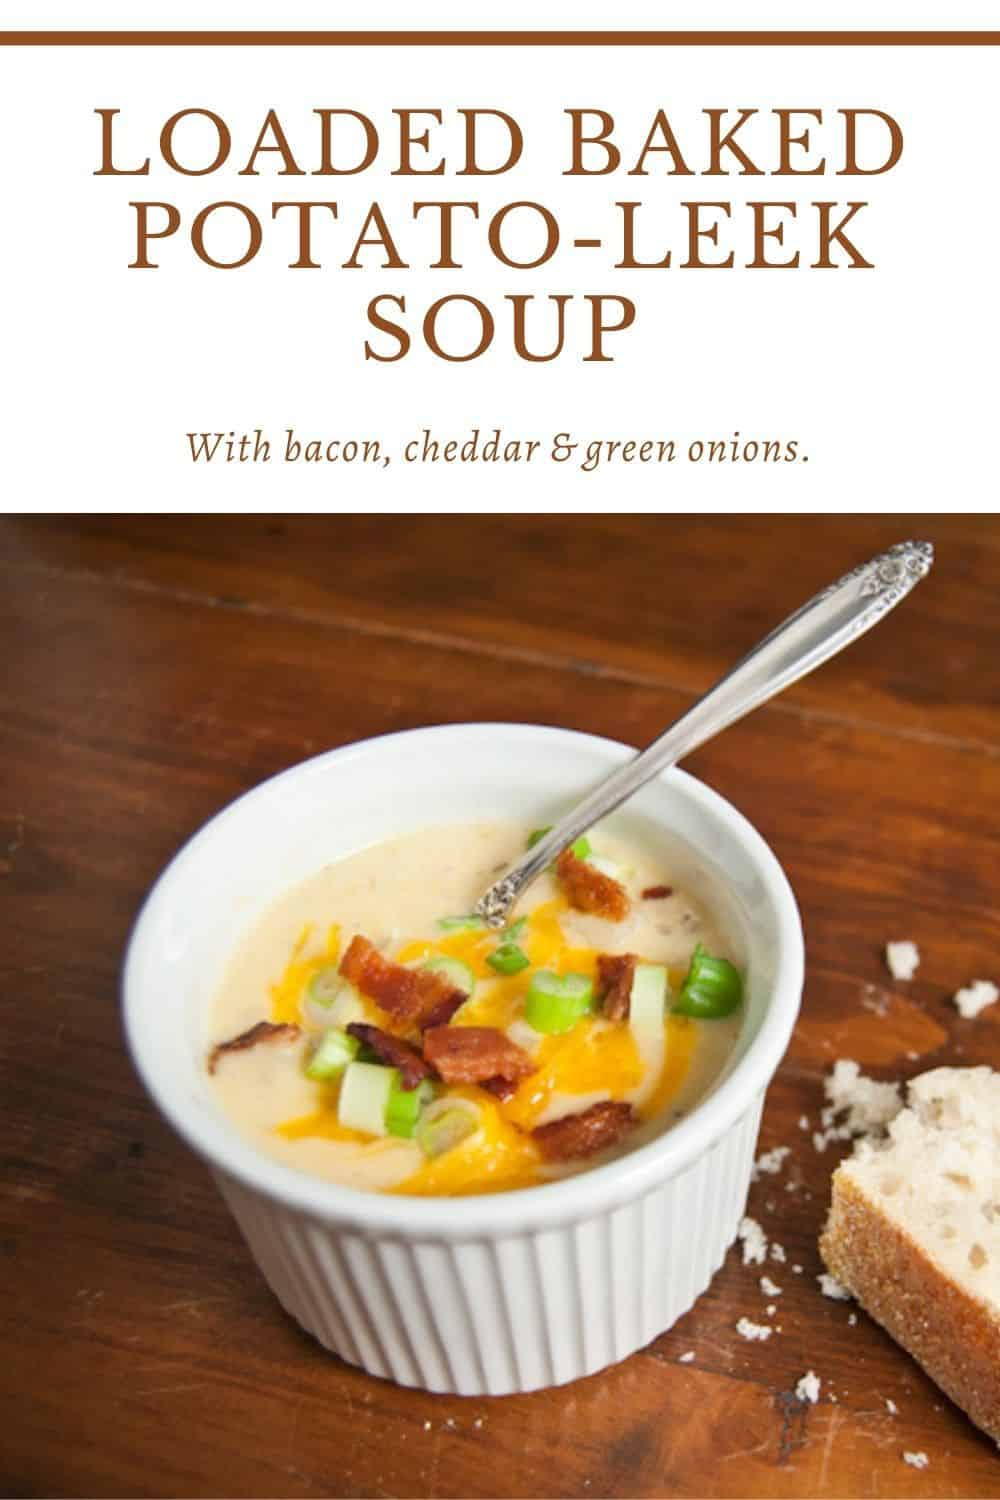 Loaded Baked Potato Leek Soup with Bacon, Cheddar and Green Onions